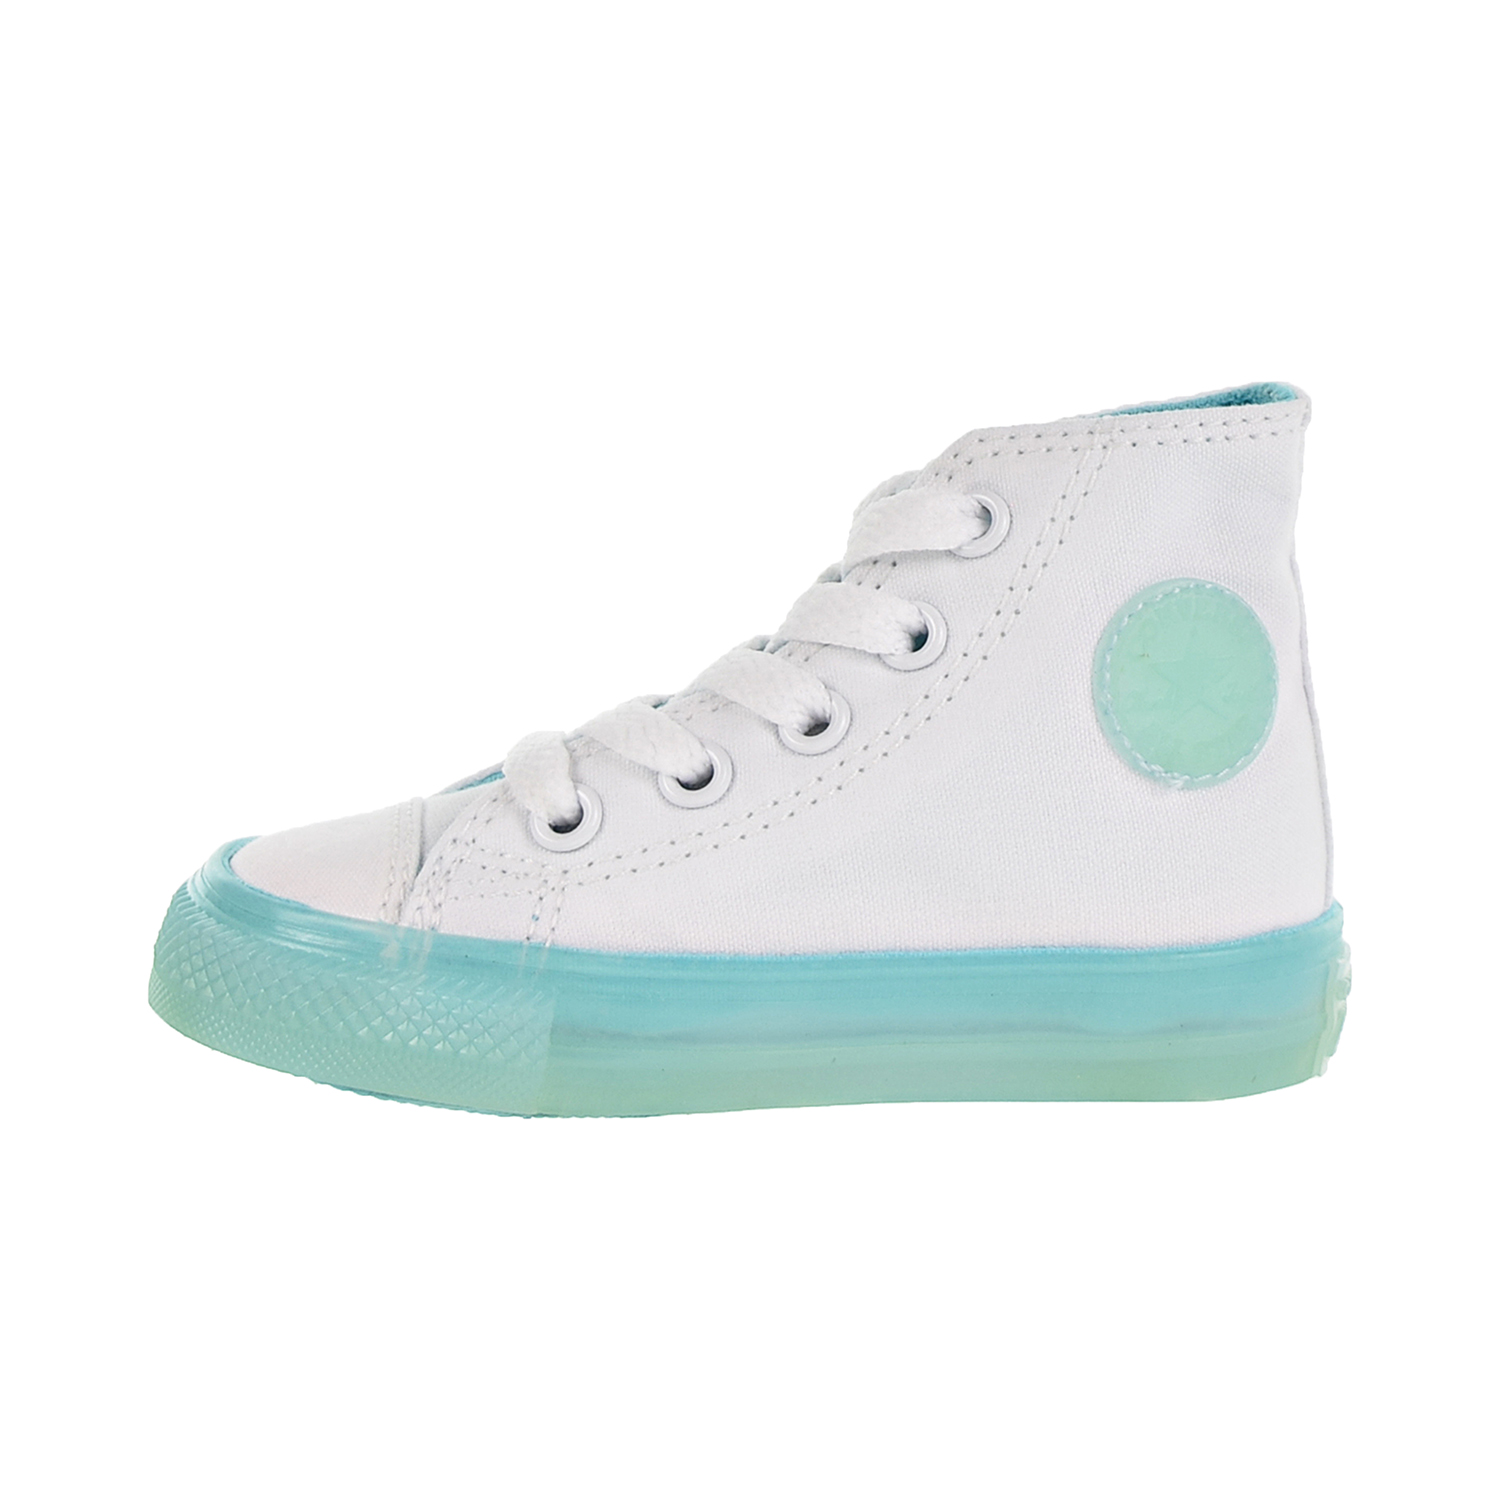 7e04bed2a991 Converse Chuck Taylor All Star Hi Toddler Shoes White Bleached Aqua 760718c